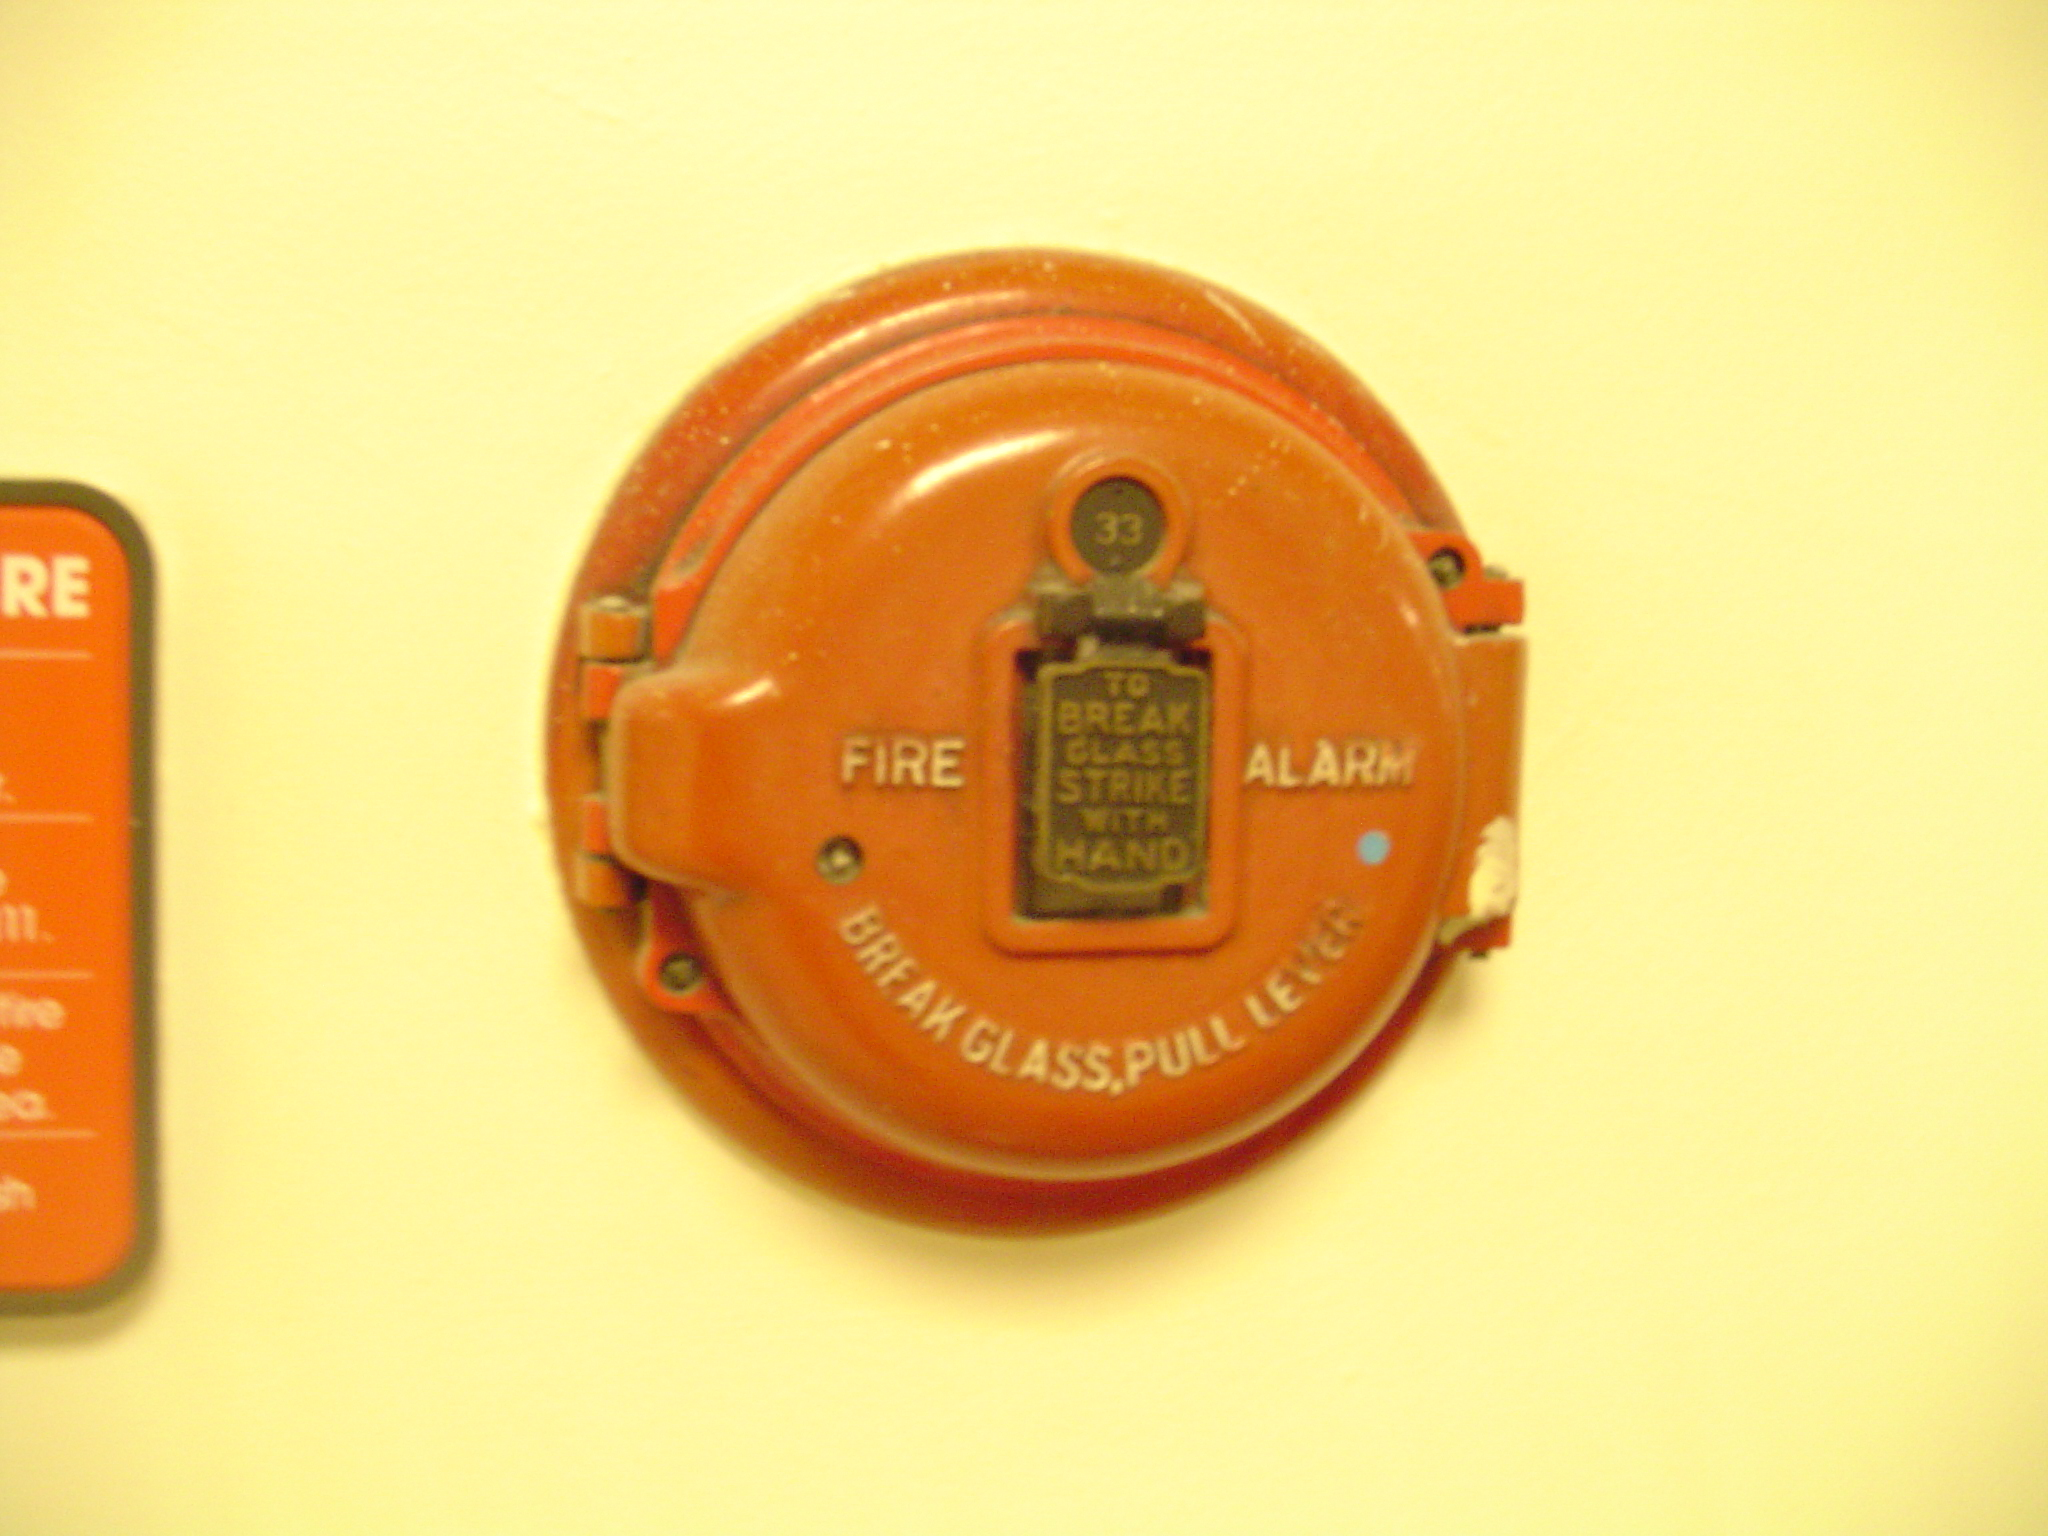 Manual fire alarm activation